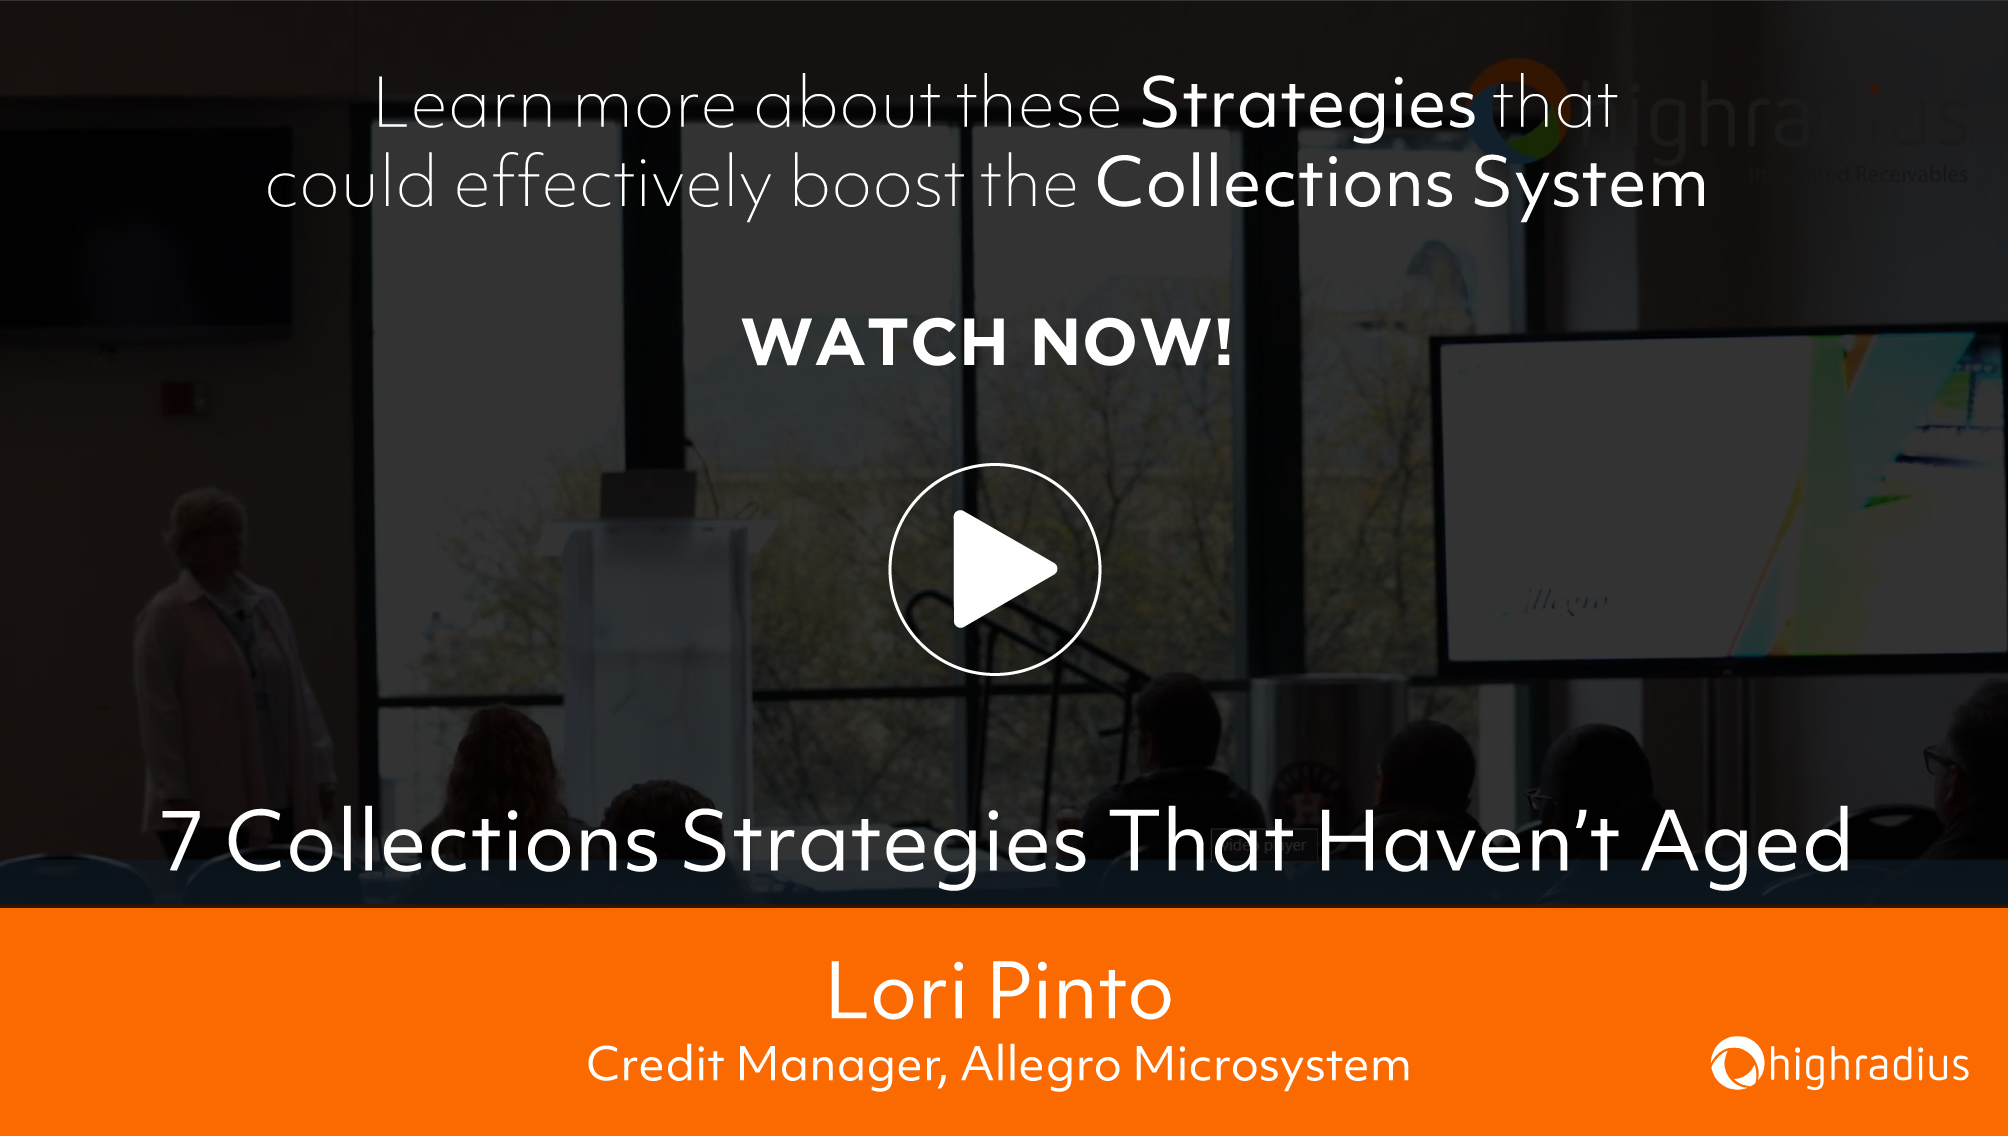 7 Collections Strategies that Haven't Aged